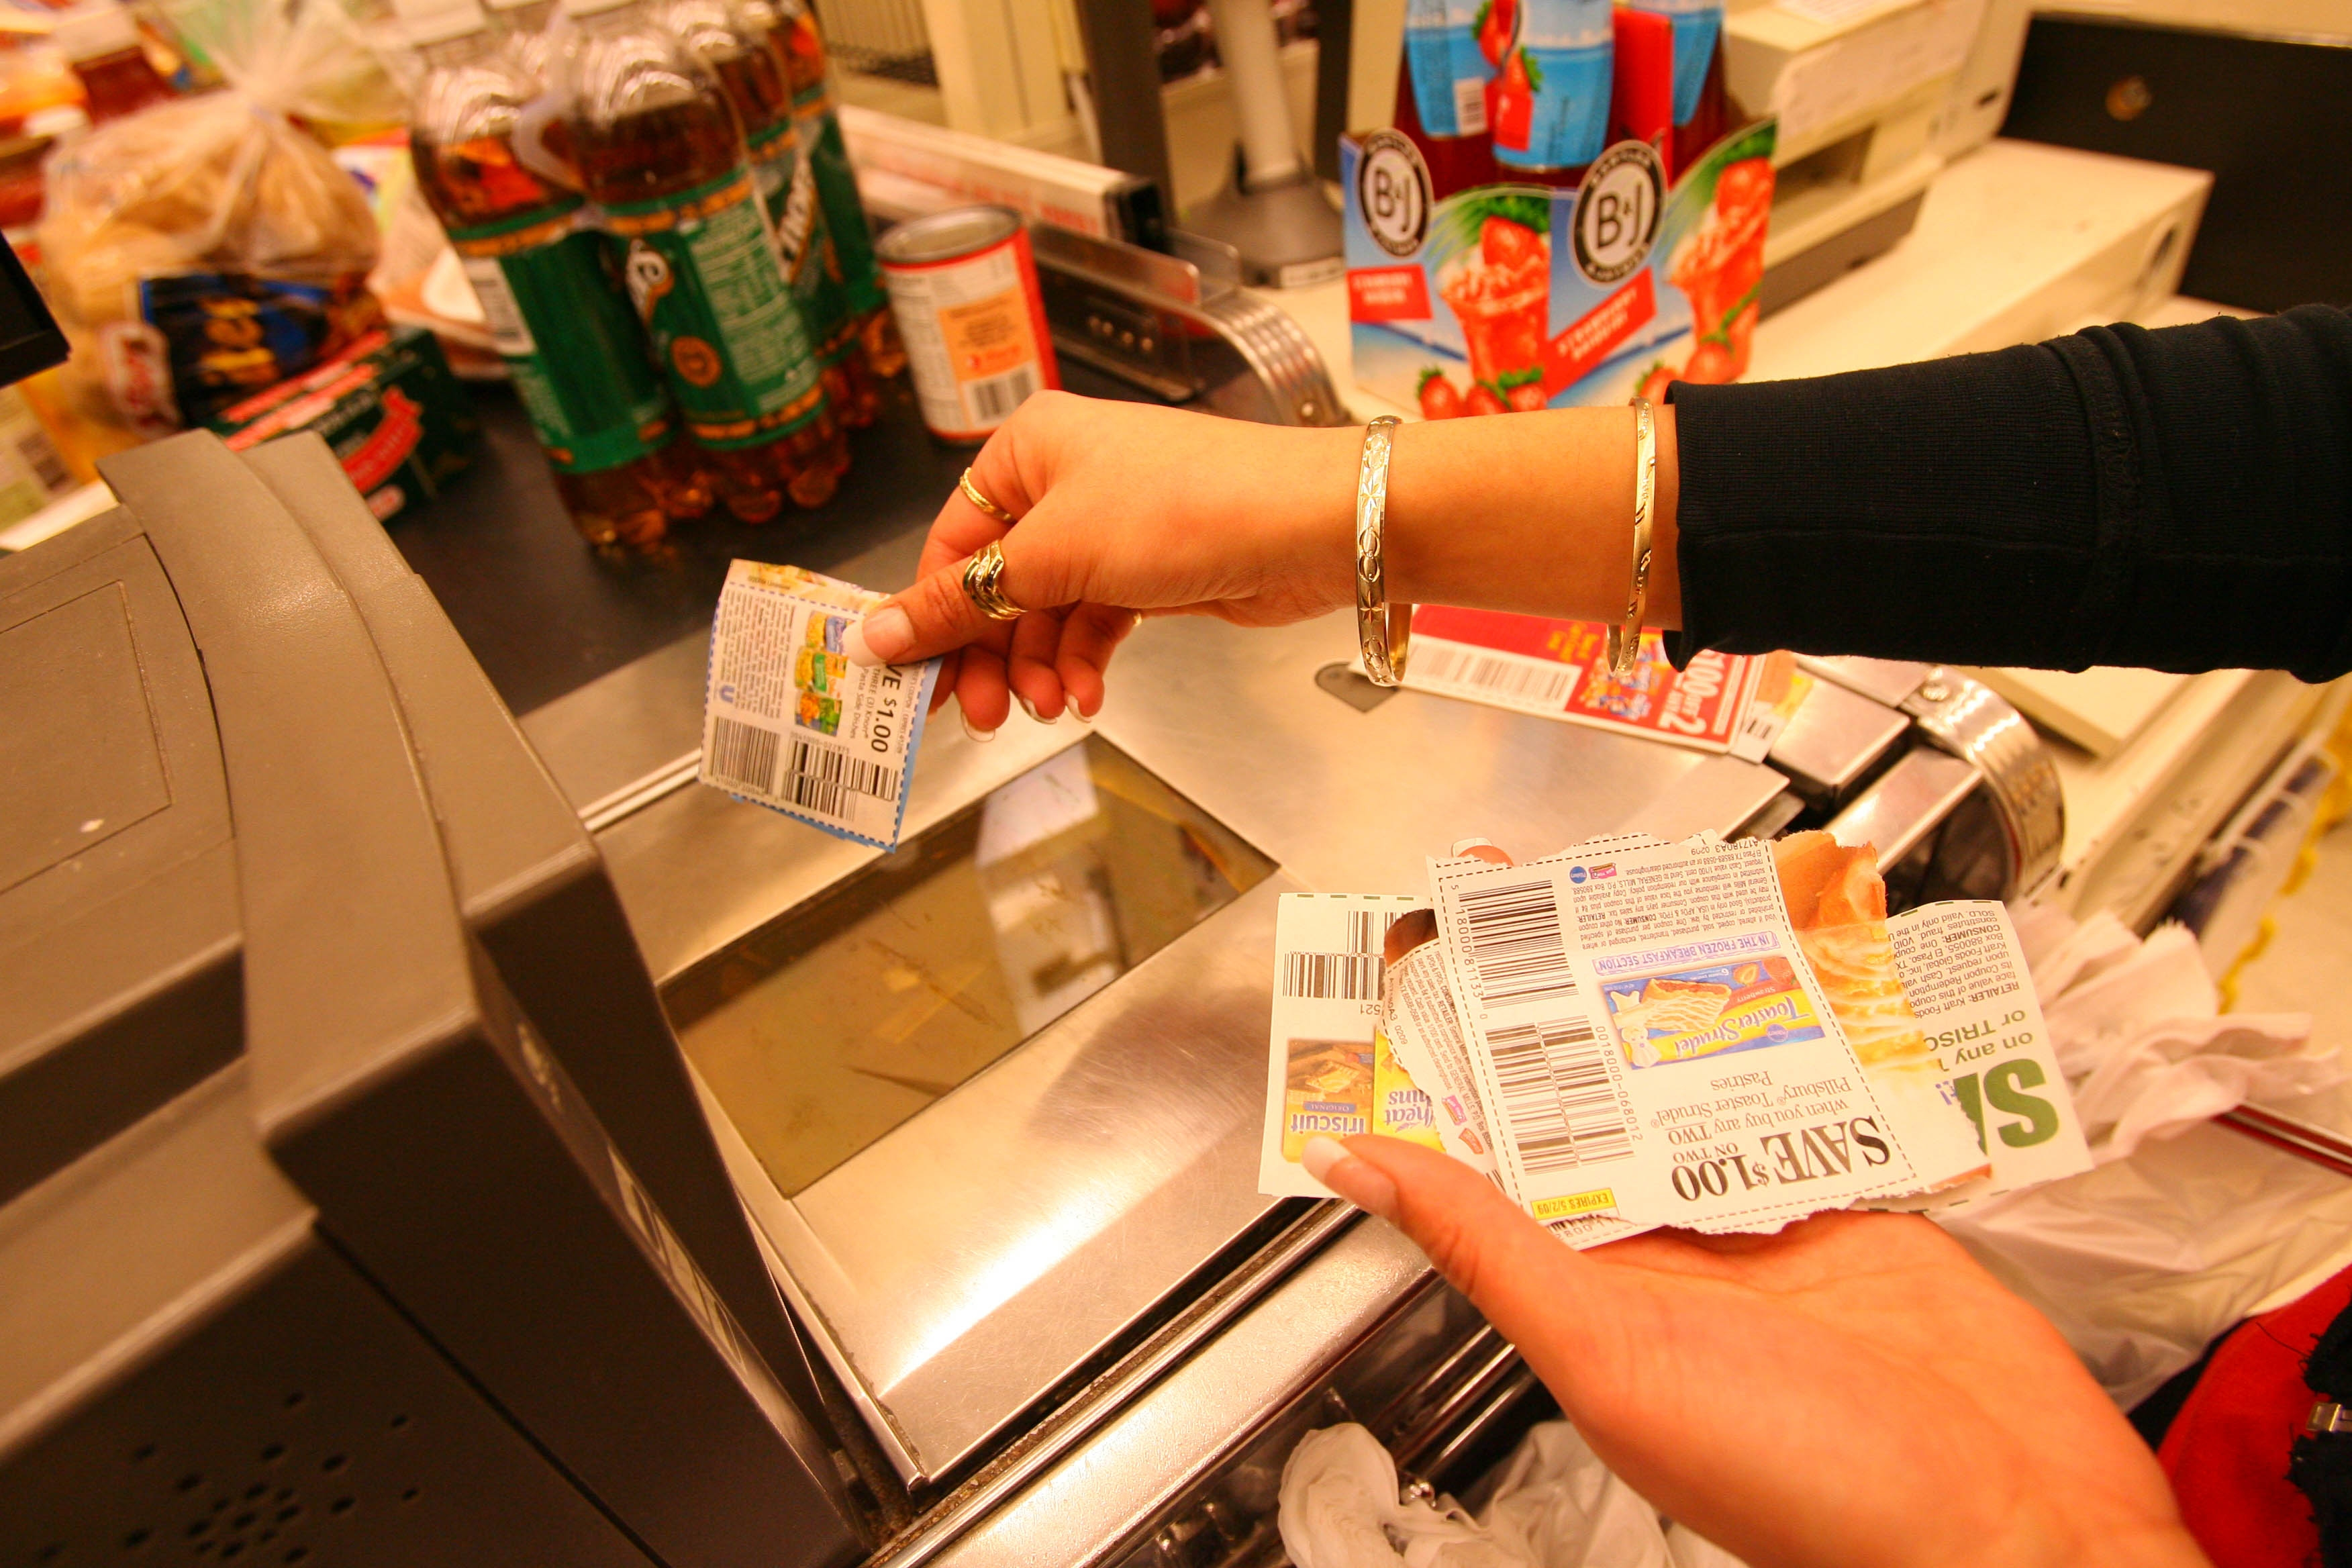 A Tops cashier scans customer coupons during one of the many and varied transactions that take place in its supermarkets daily. With a move to data analytics, the company has found opportunities to better allocate its personnel and cut down on wait times.